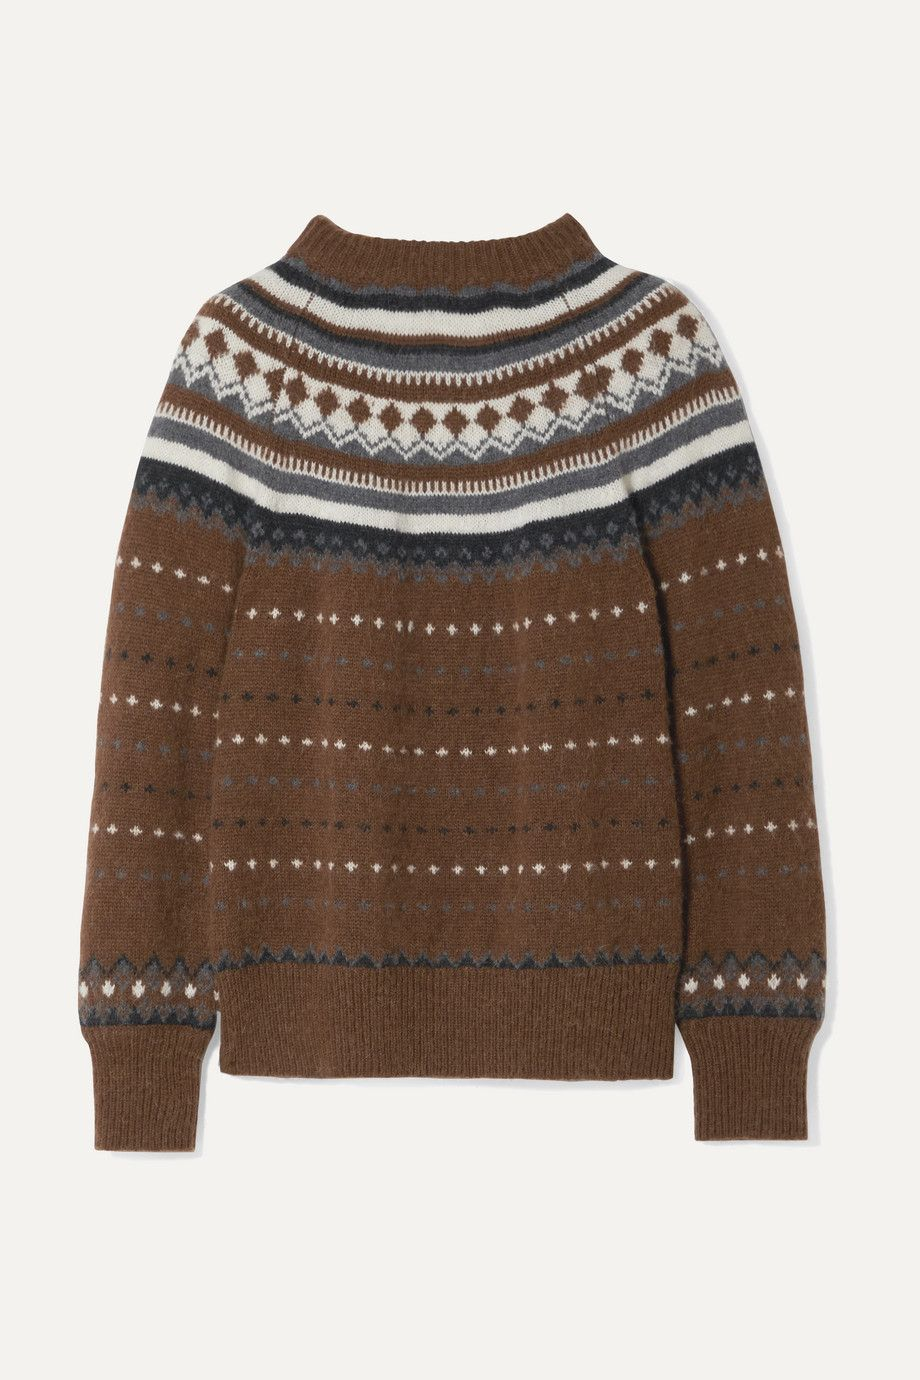 re-done-50s-fair-isle-knitted-sweater